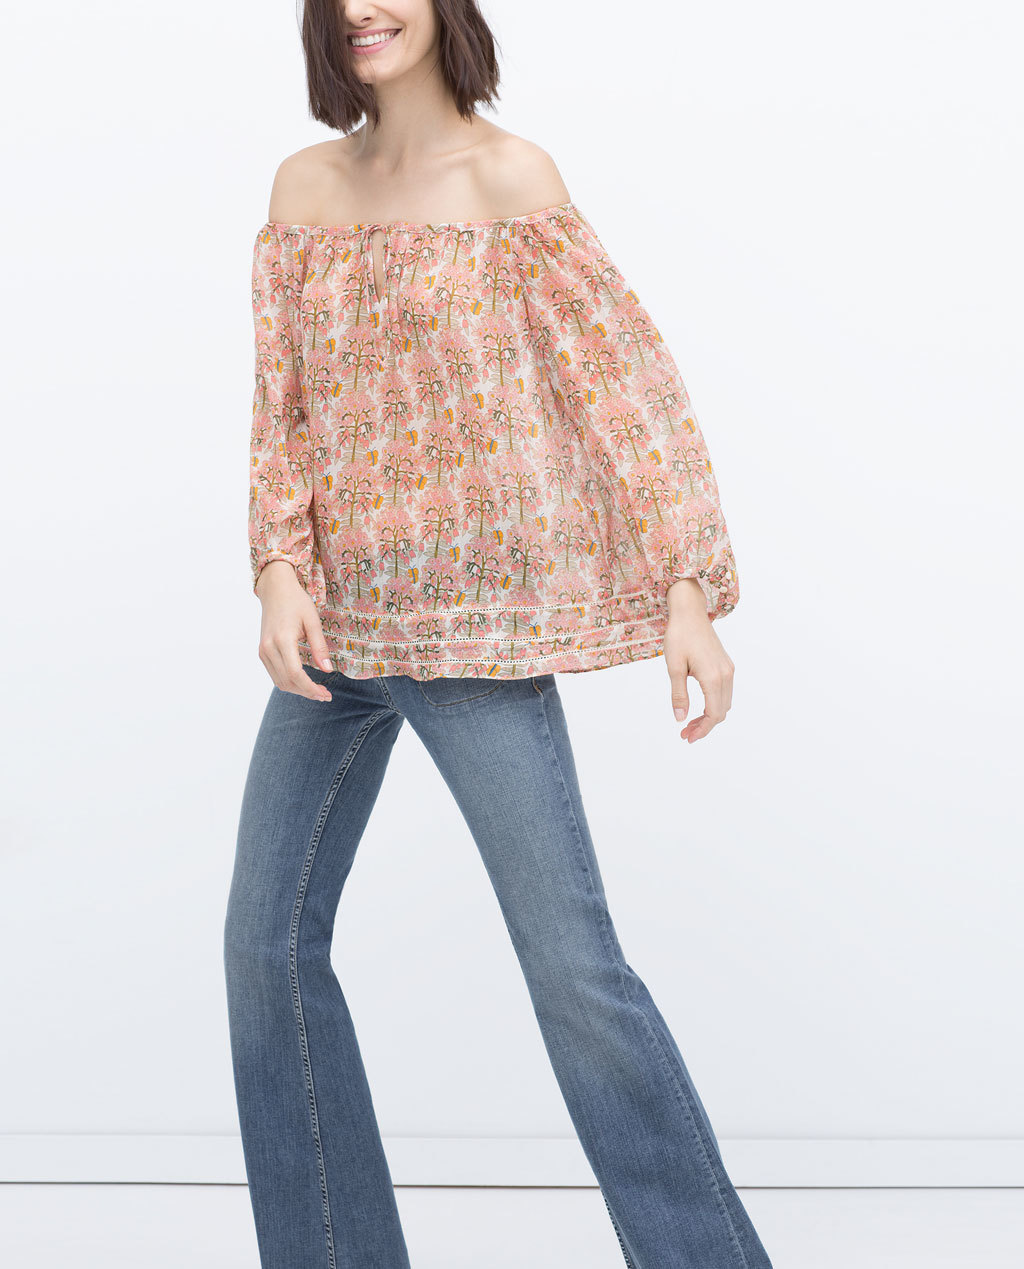 Printed Blouse - neckline: off the shoulder; length: below the bottom; style: blouse; secondary colour: ivory/cream; predominant colour: pink; occasions: casual; fibres: polyester/polyamide - 100%; fit: loose; sleeve length: long sleeve; sleeve style: standard; texture group: sheer fabrics/chiffon/organza etc.; pattern type: fabric; pattern size: standard; pattern: patterned/print; season: s/s 2015; multicoloured: multicoloured; wardrobe: highlight